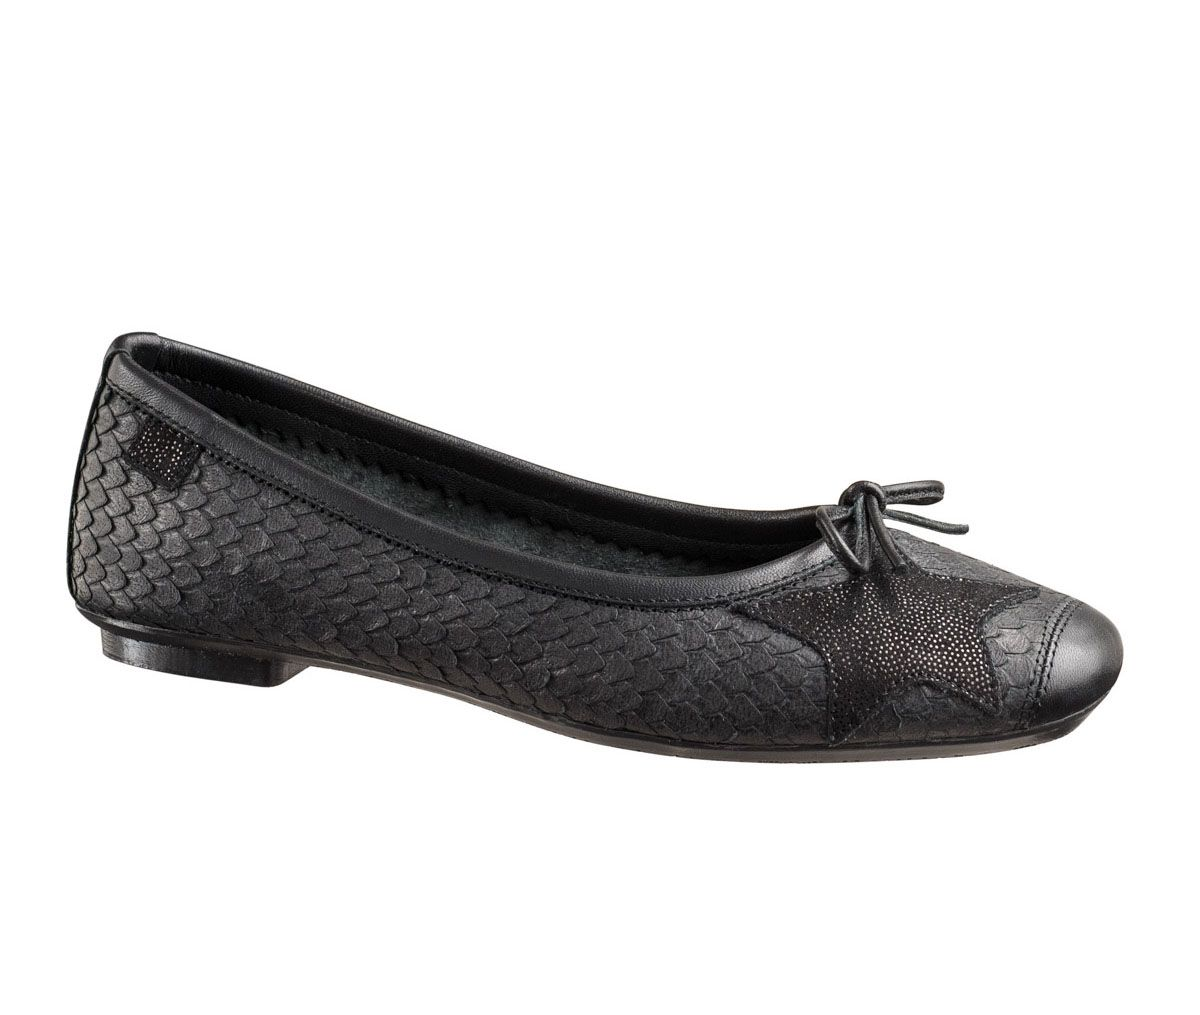 BALLERINES HINDI MIX AFRICA NOIR MnYQrMl